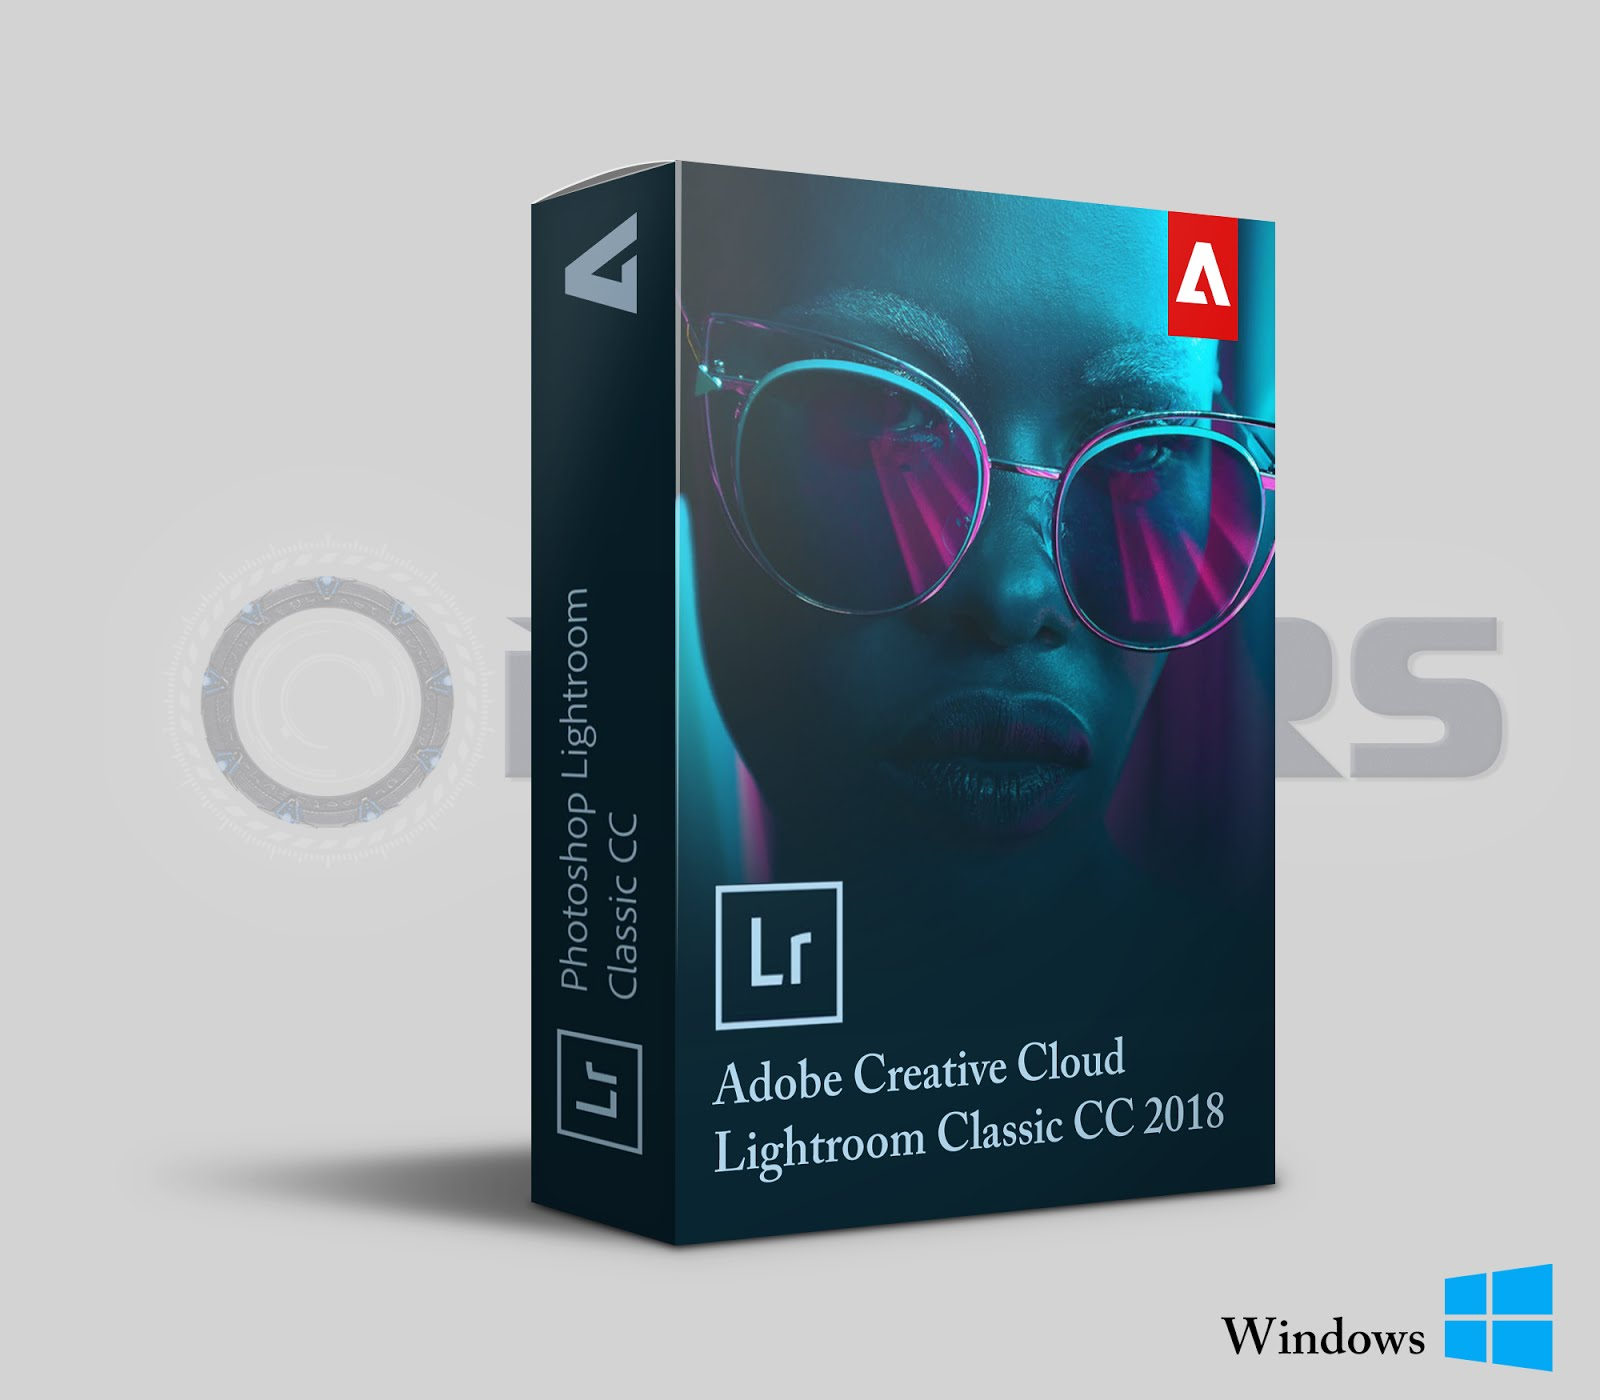 Download Adobe Photoshop Lightroom Classic CC 2018 v7 0 0 10